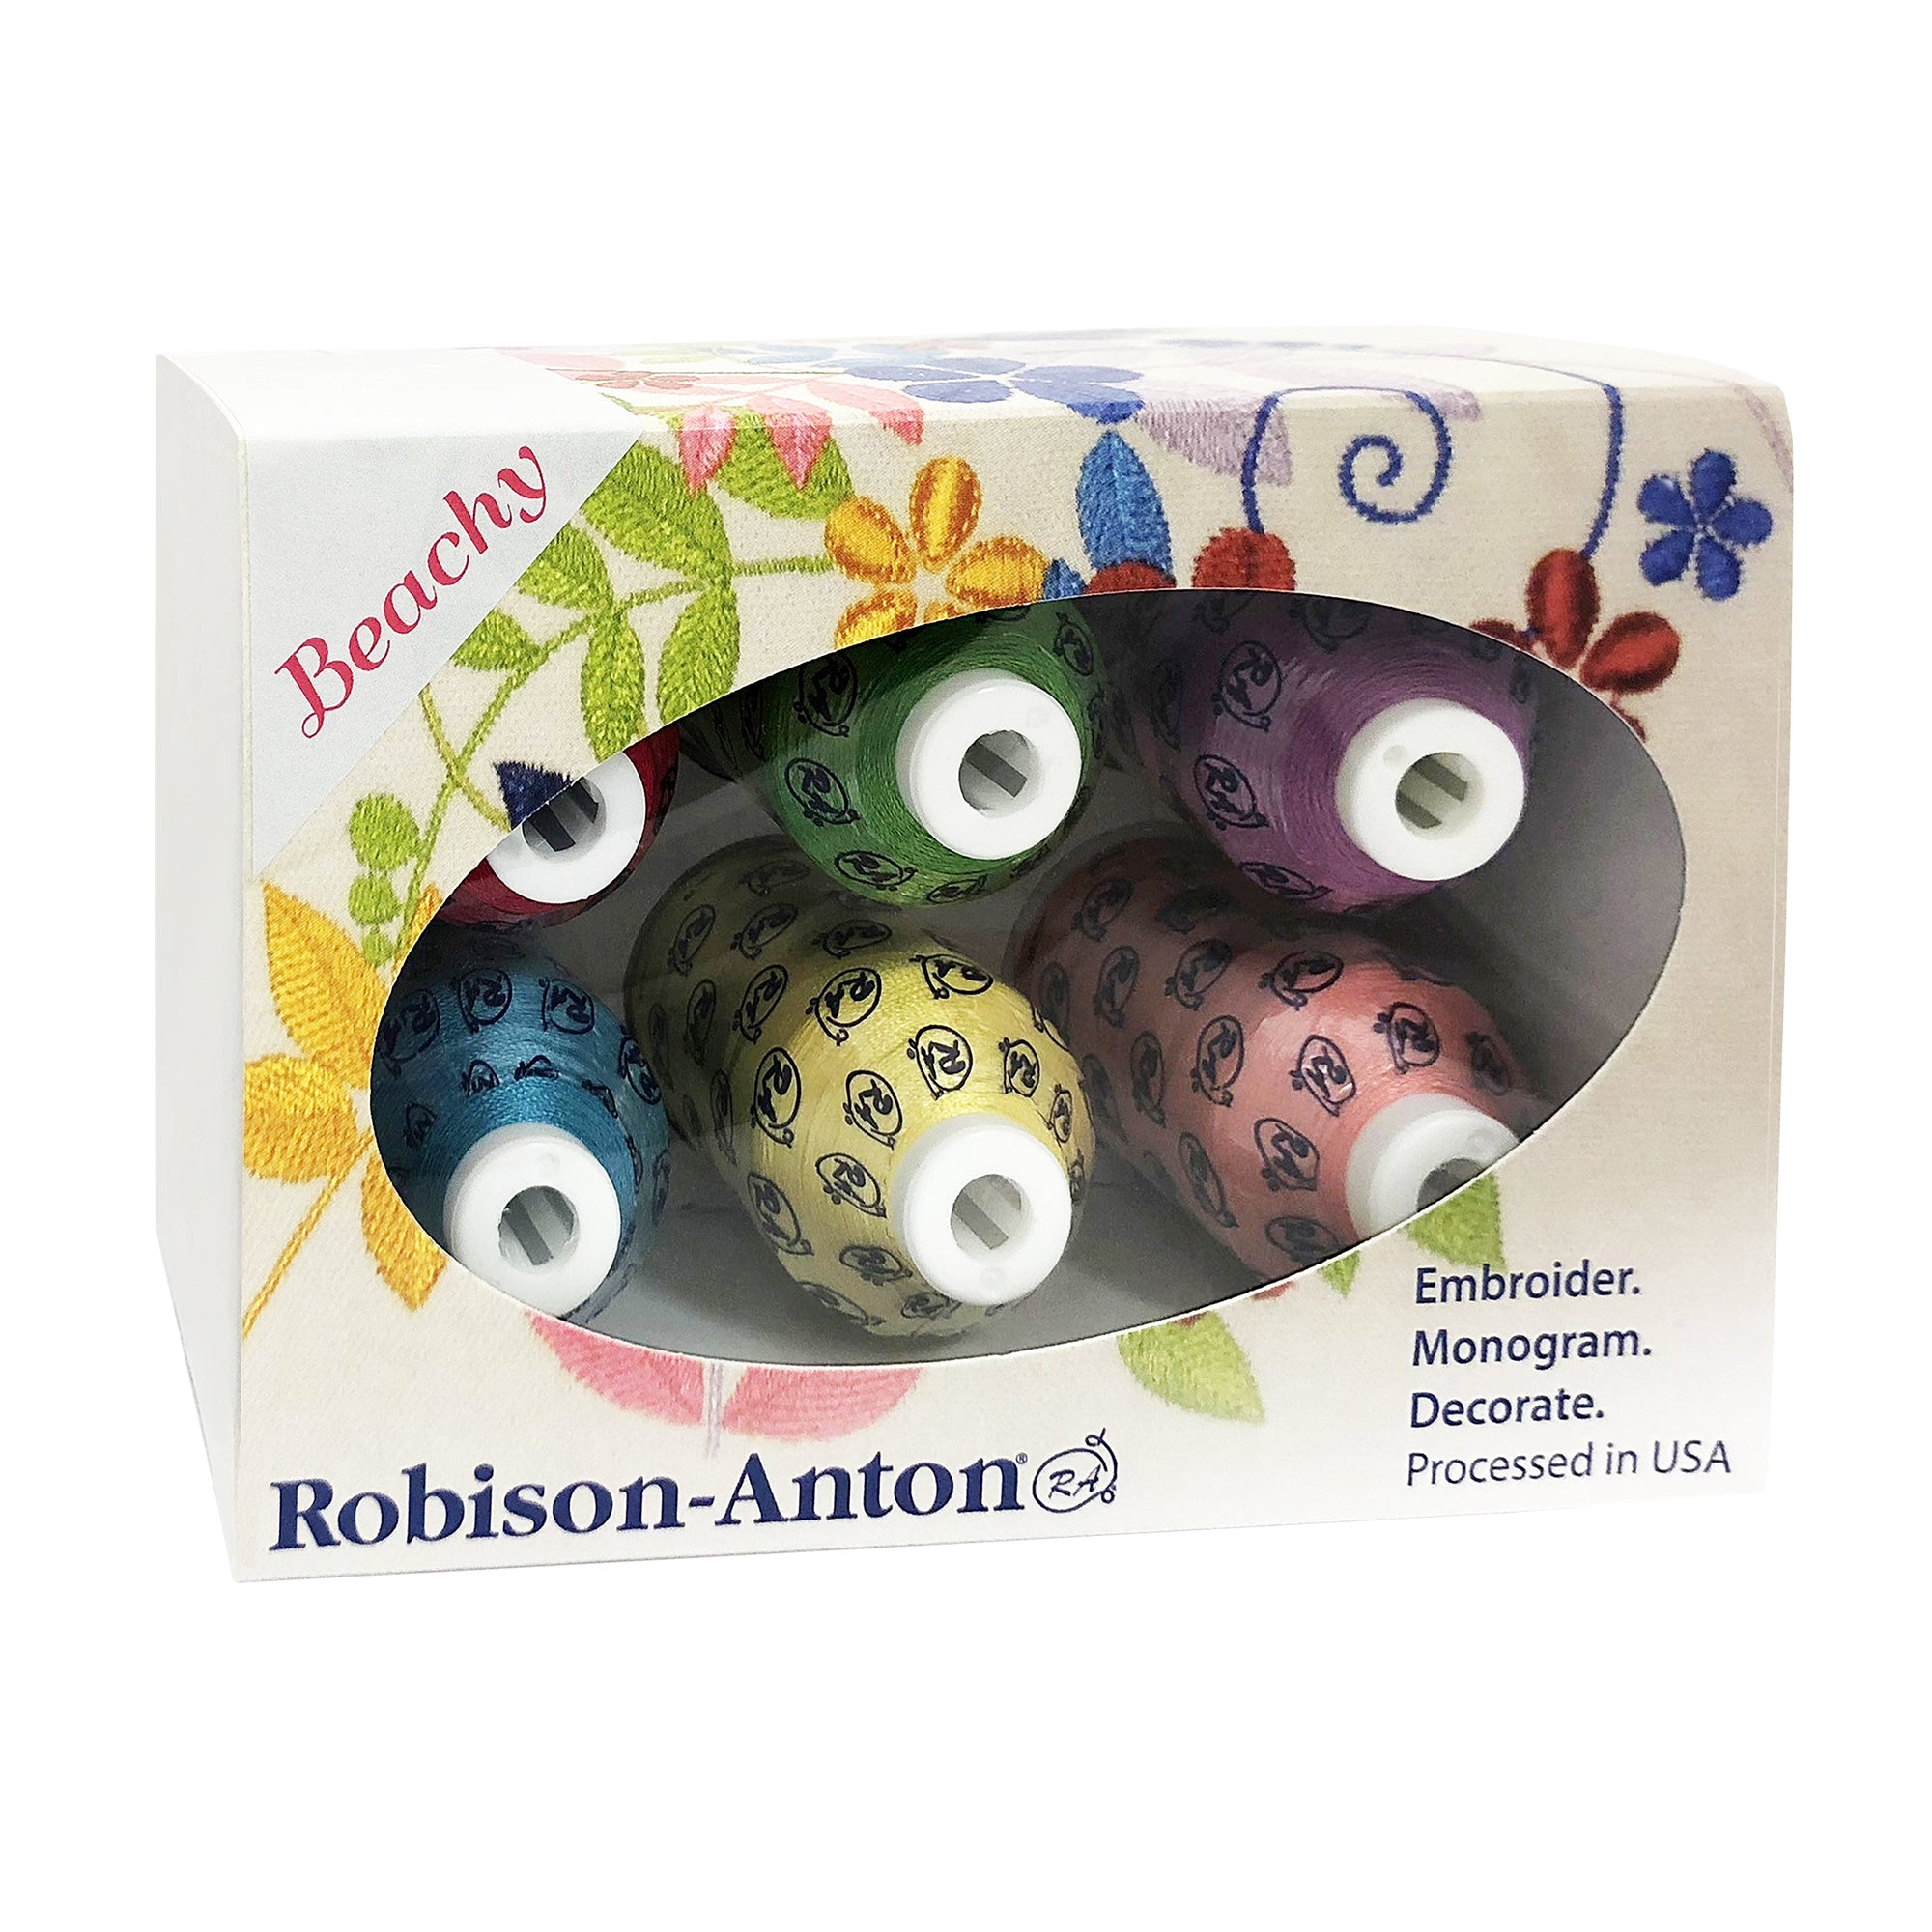 Robison-Anton Rayon Mini King Box